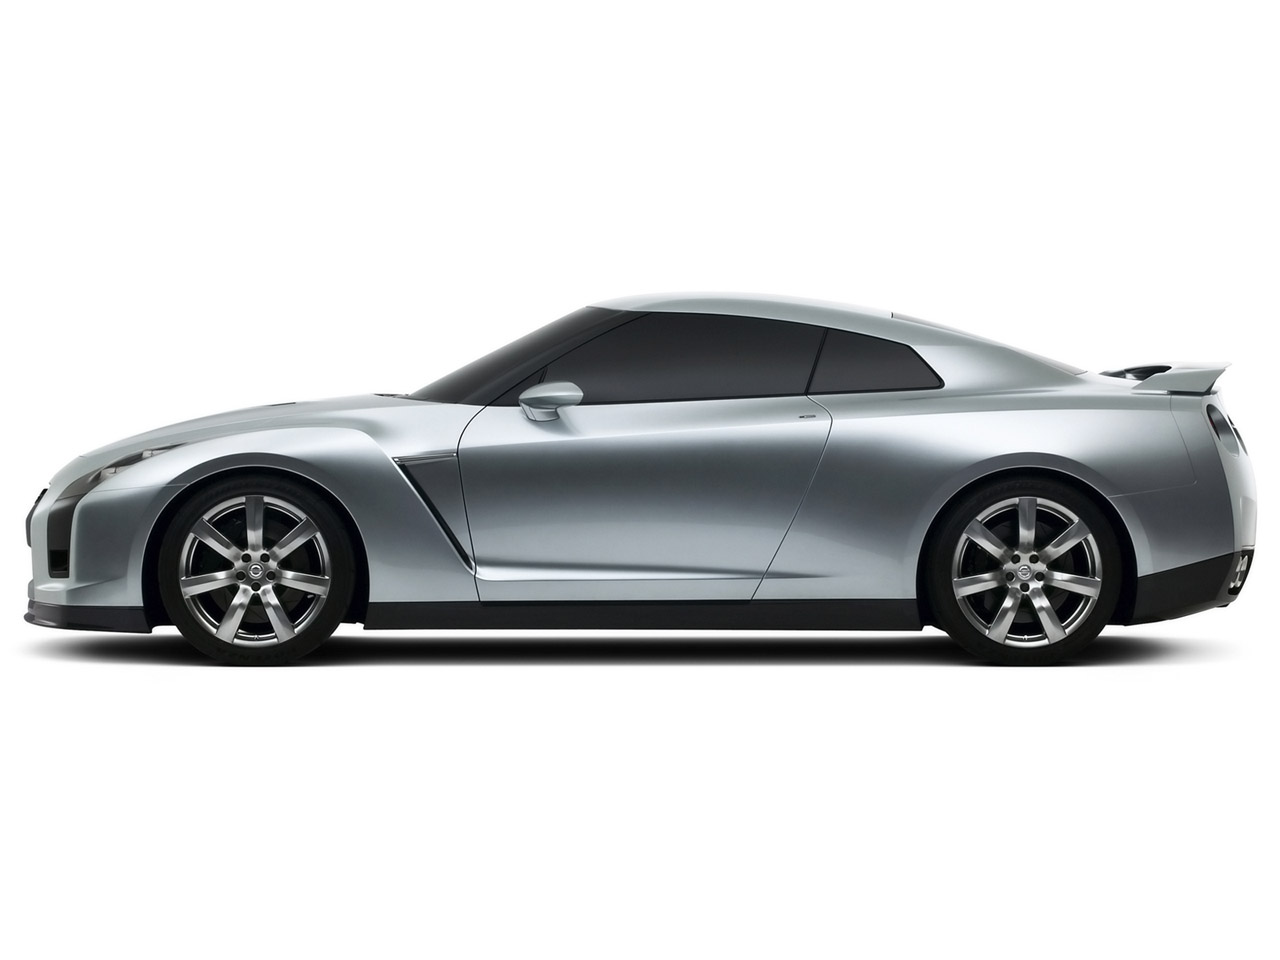 Nissan Skyline GT-R photo 29328